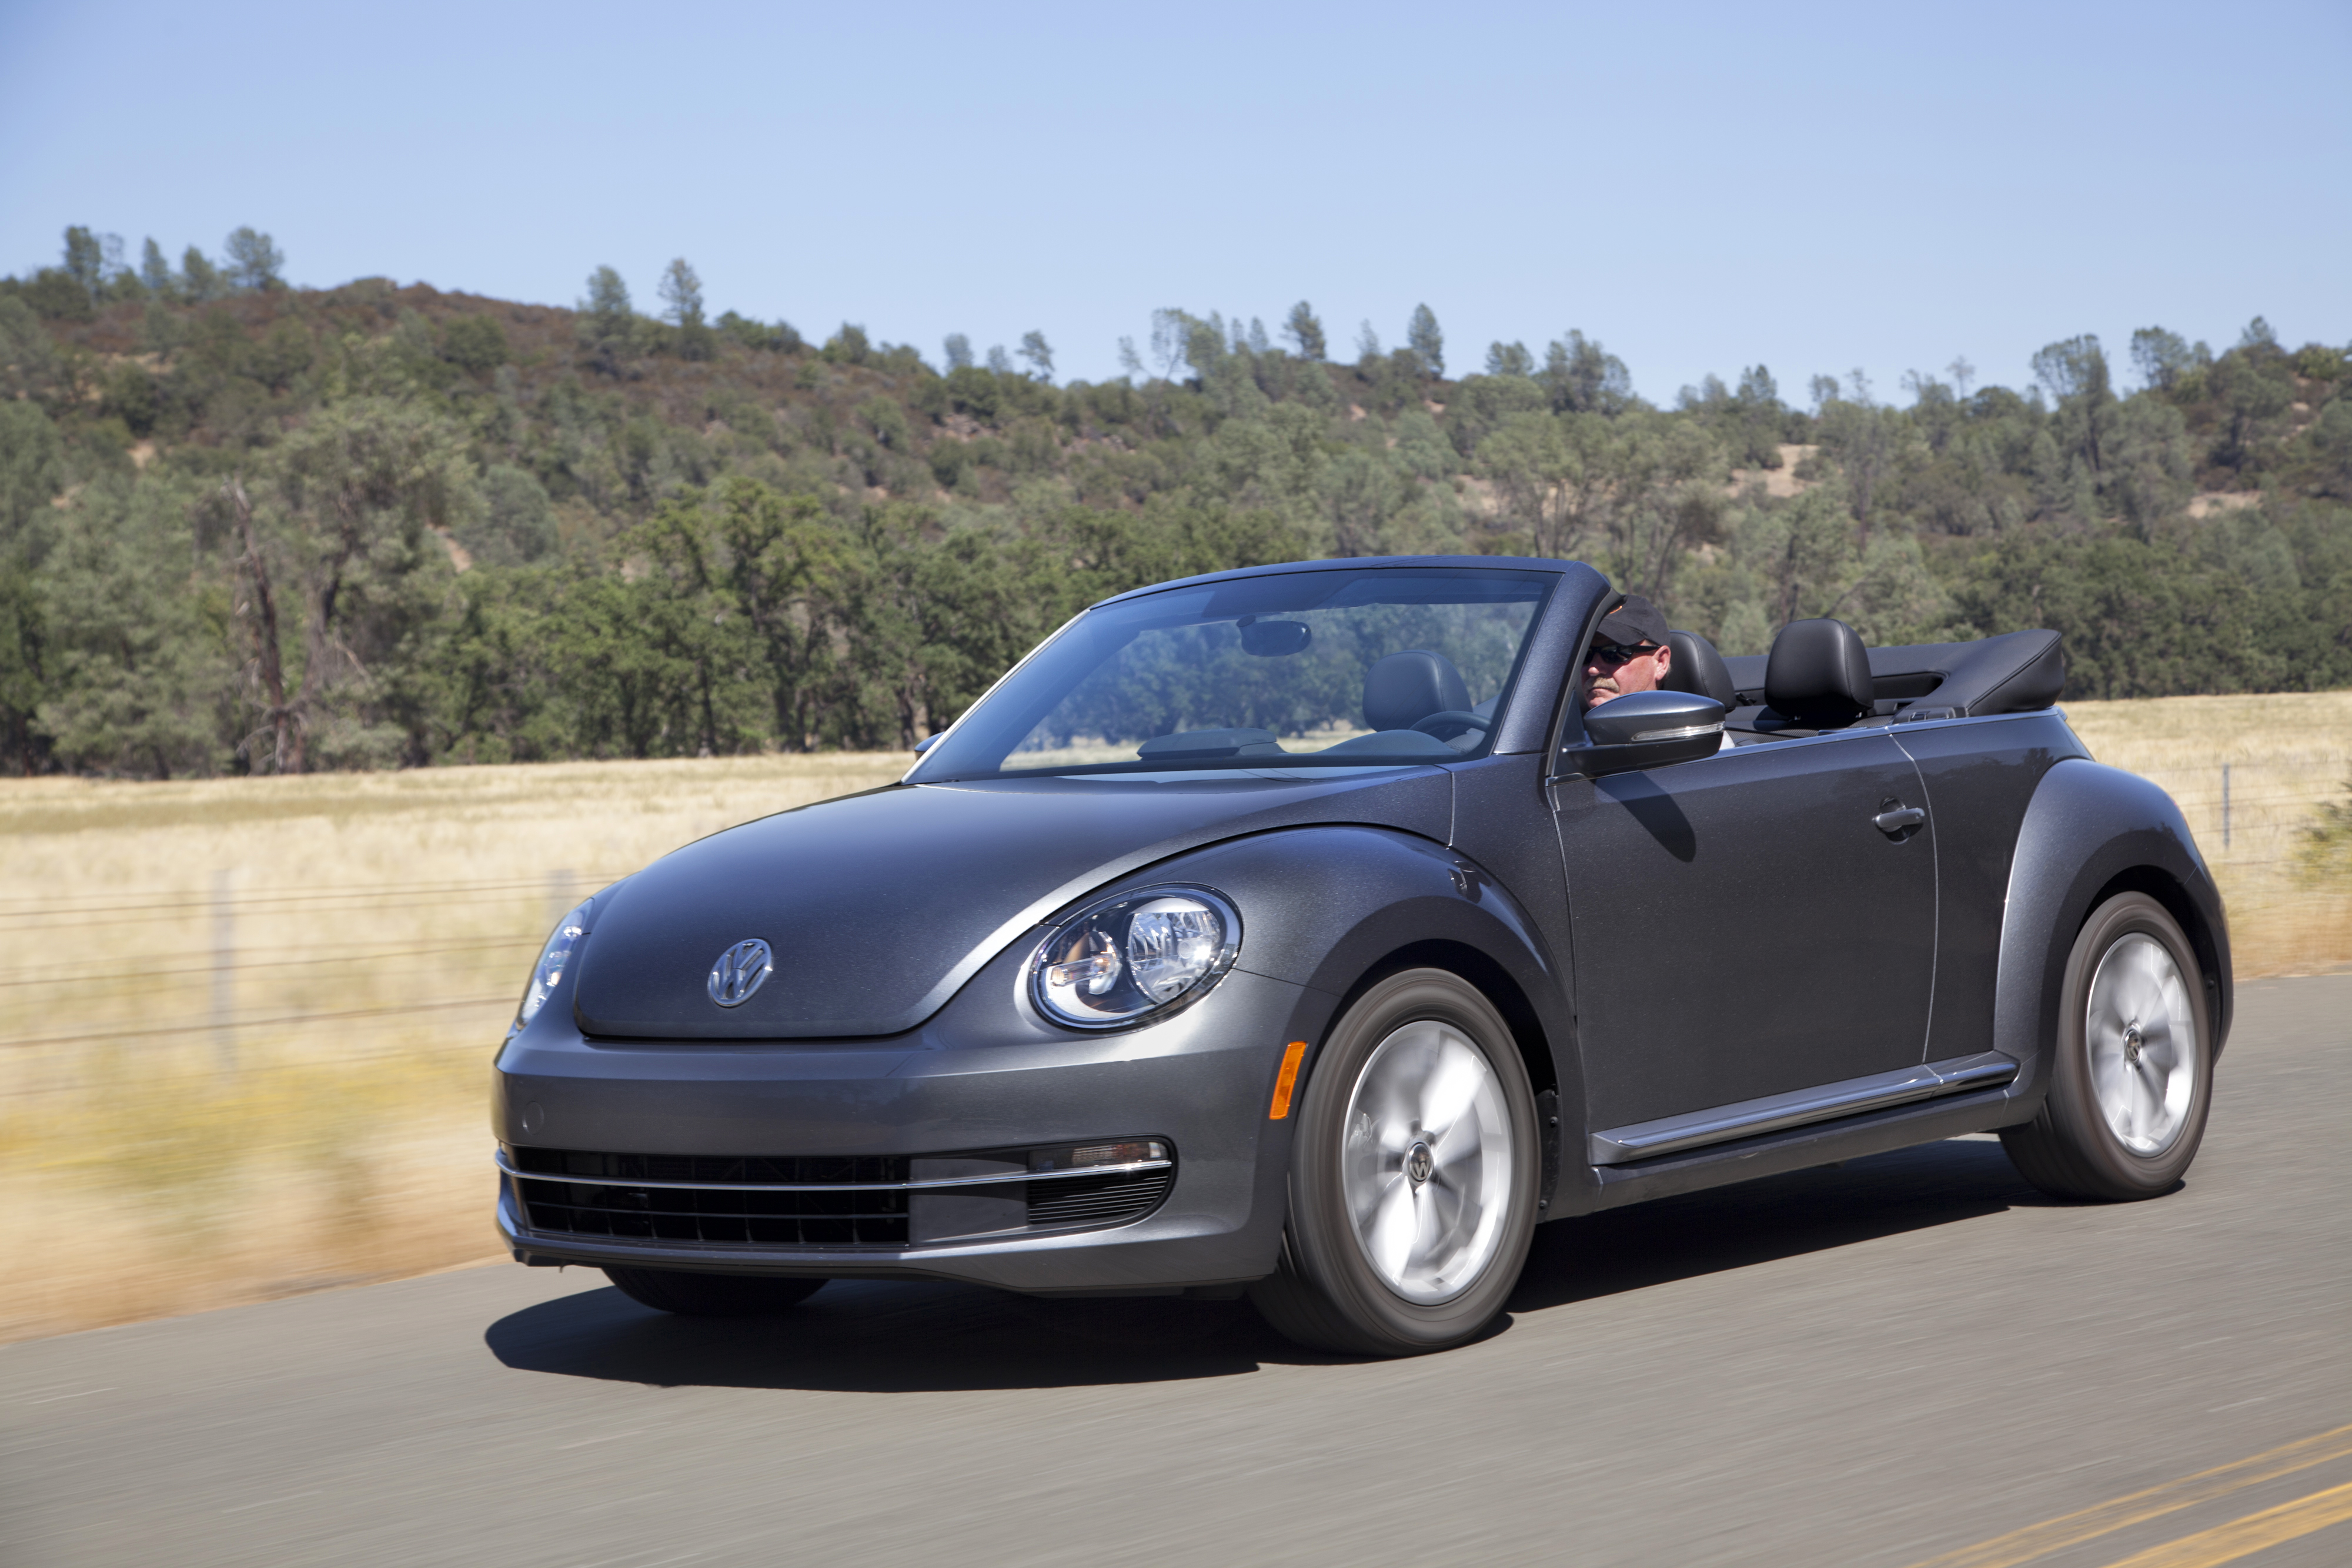 volkswagen beetle throwing it back to the good ole days the travel voice by becky. Black Bedroom Furniture Sets. Home Design Ideas